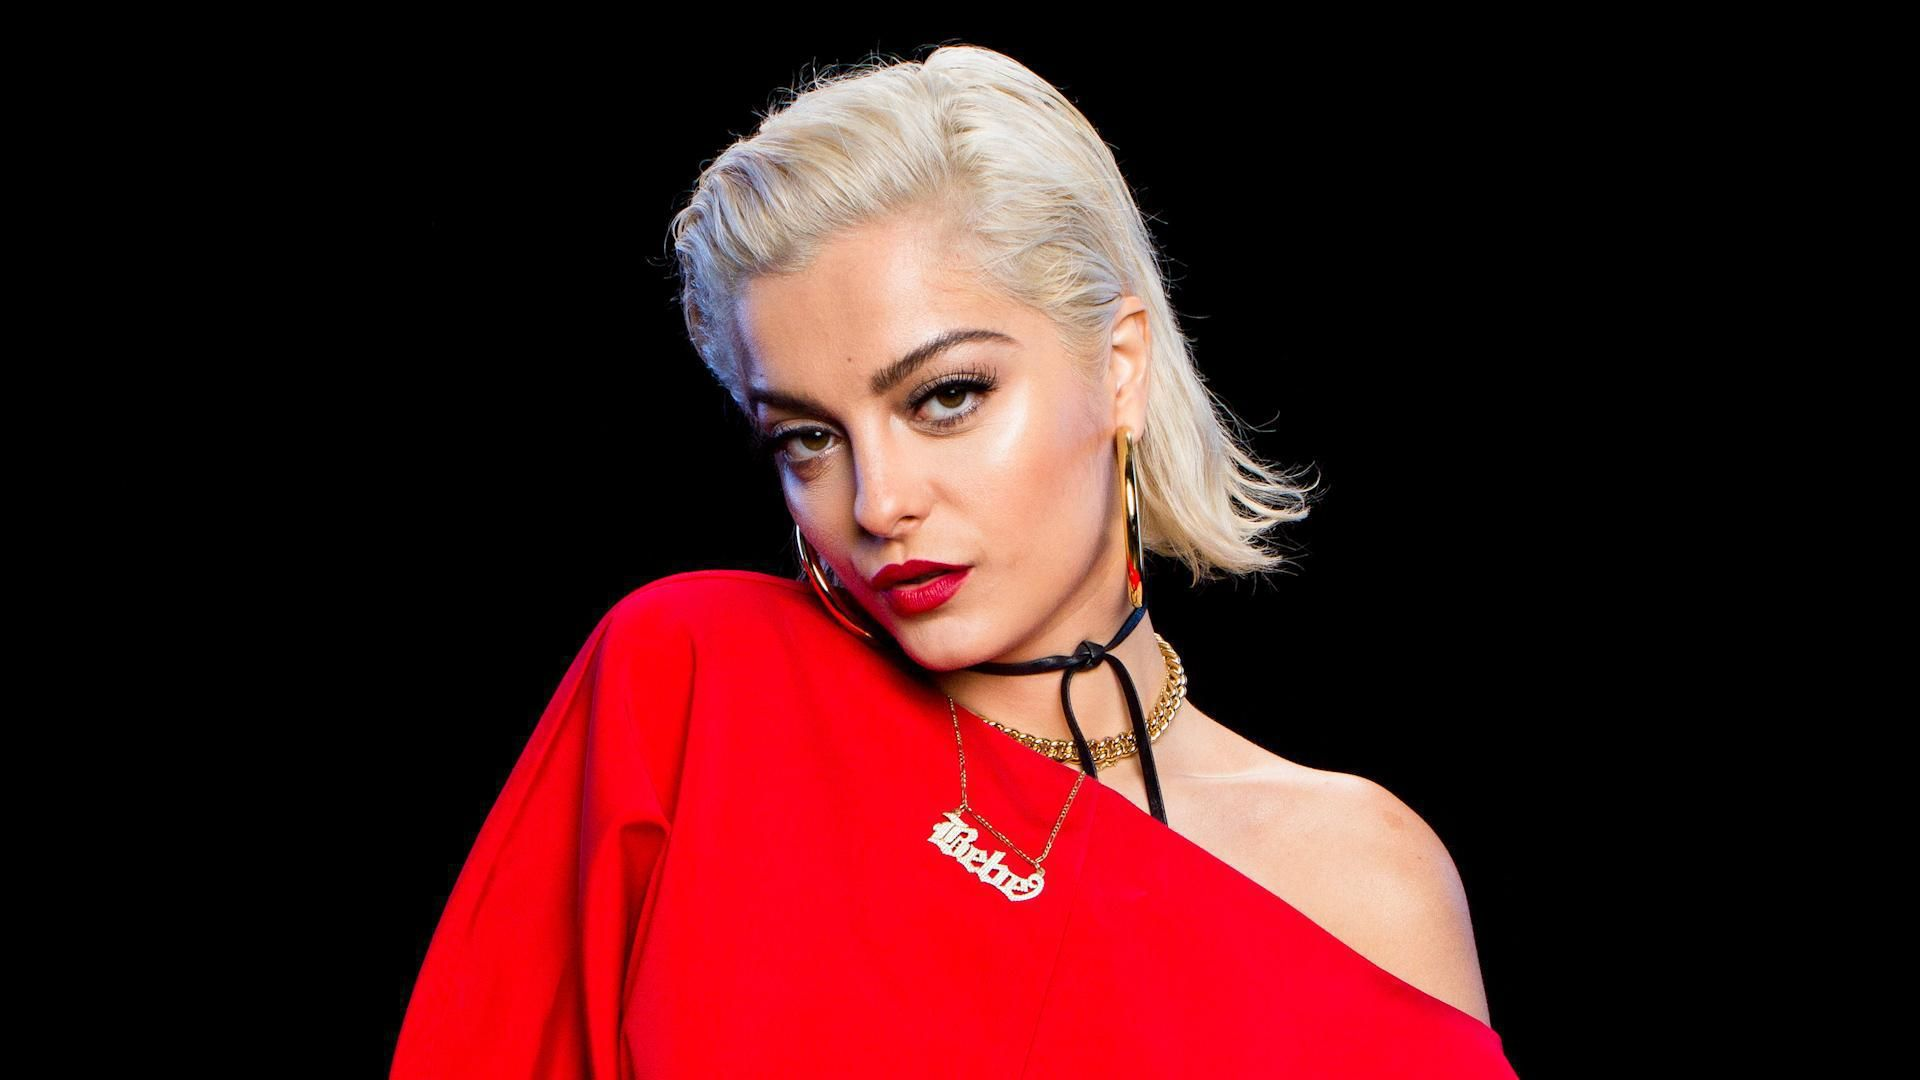 bebe rexha short hair wallpaper 62555